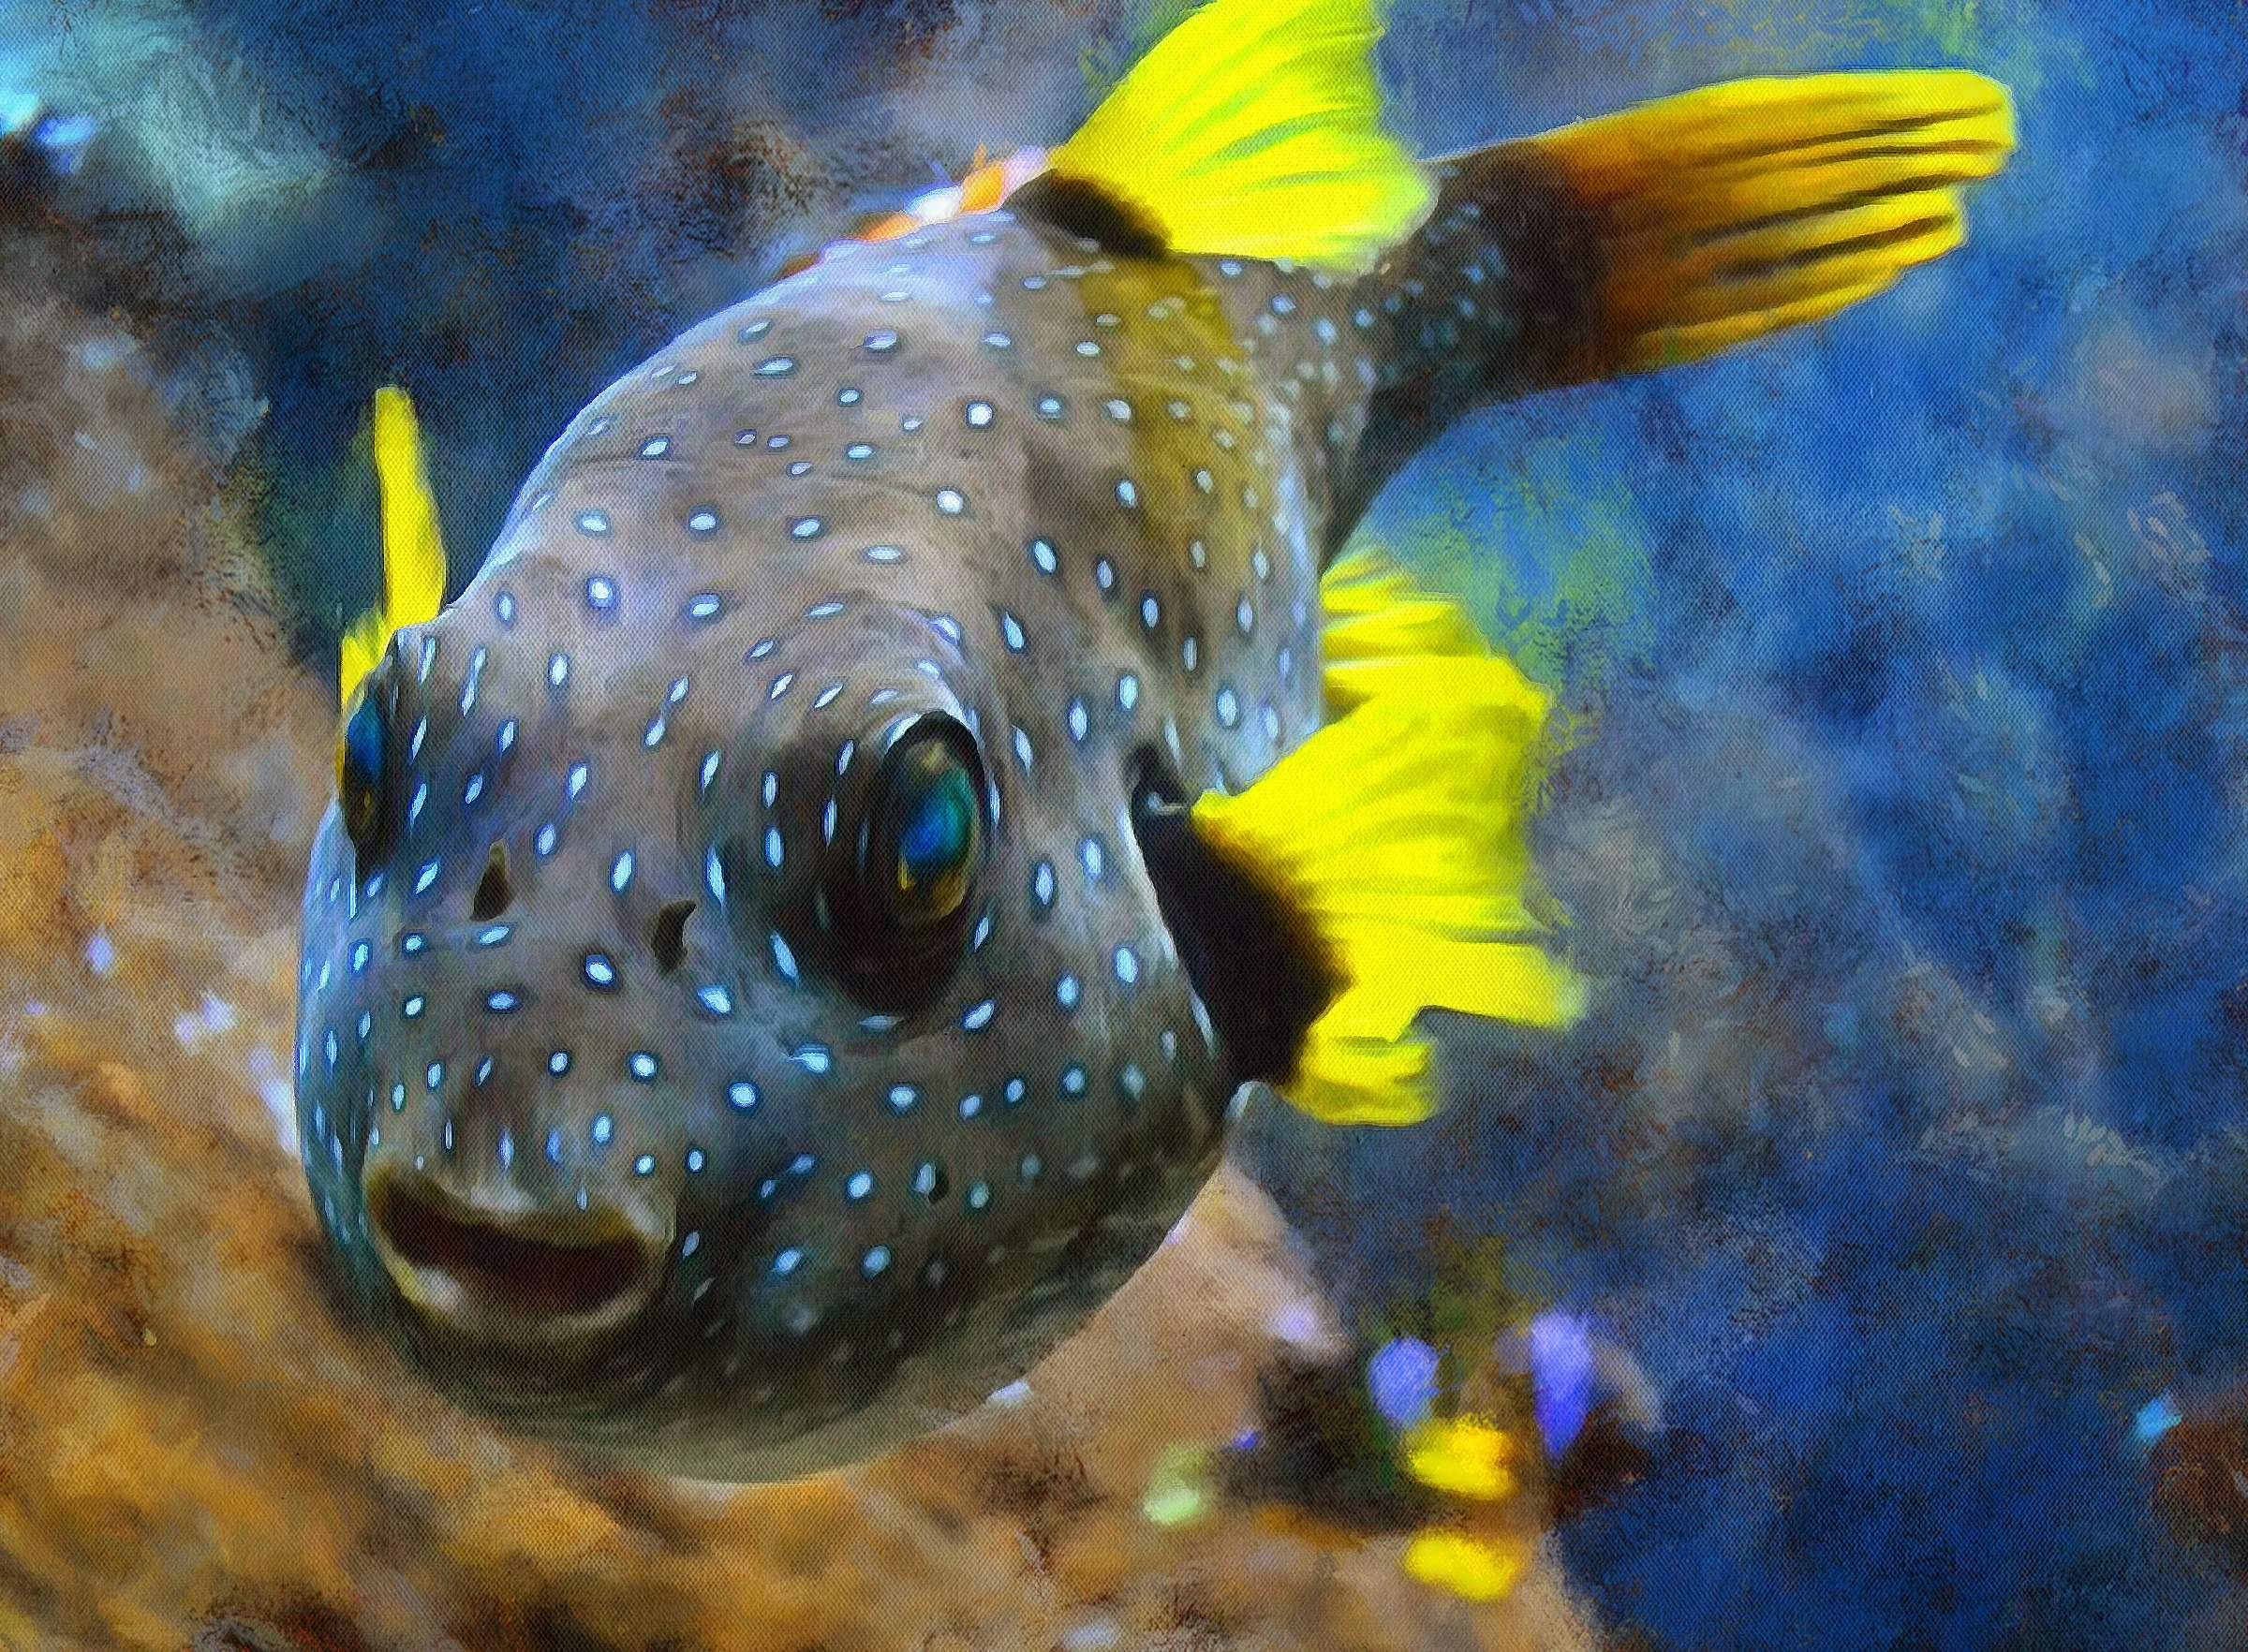 Puffer fish facts interesting facts about puffer fish for Giant puffer fish